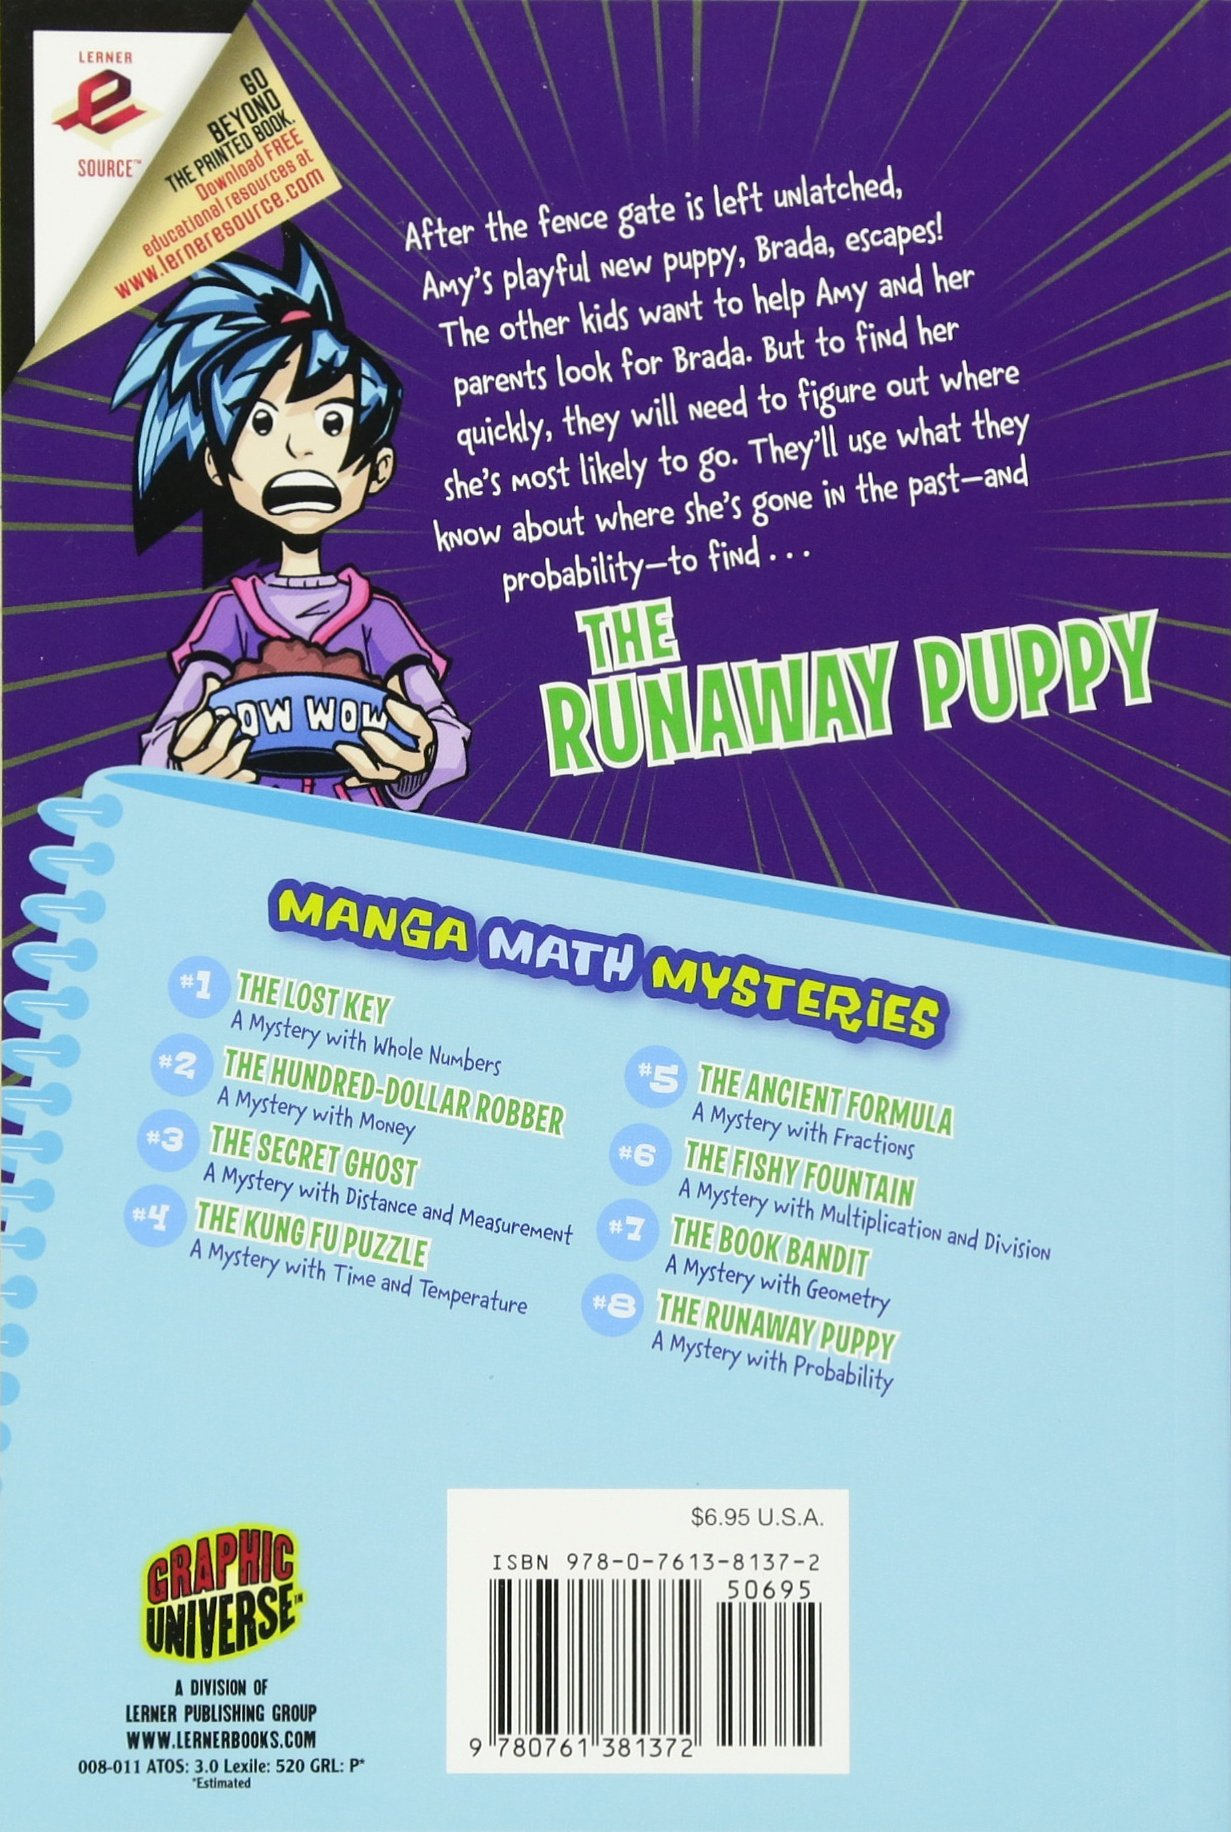 Manga Math Mysteries 8: The Runaway Puppy A Mystery With Probability ...